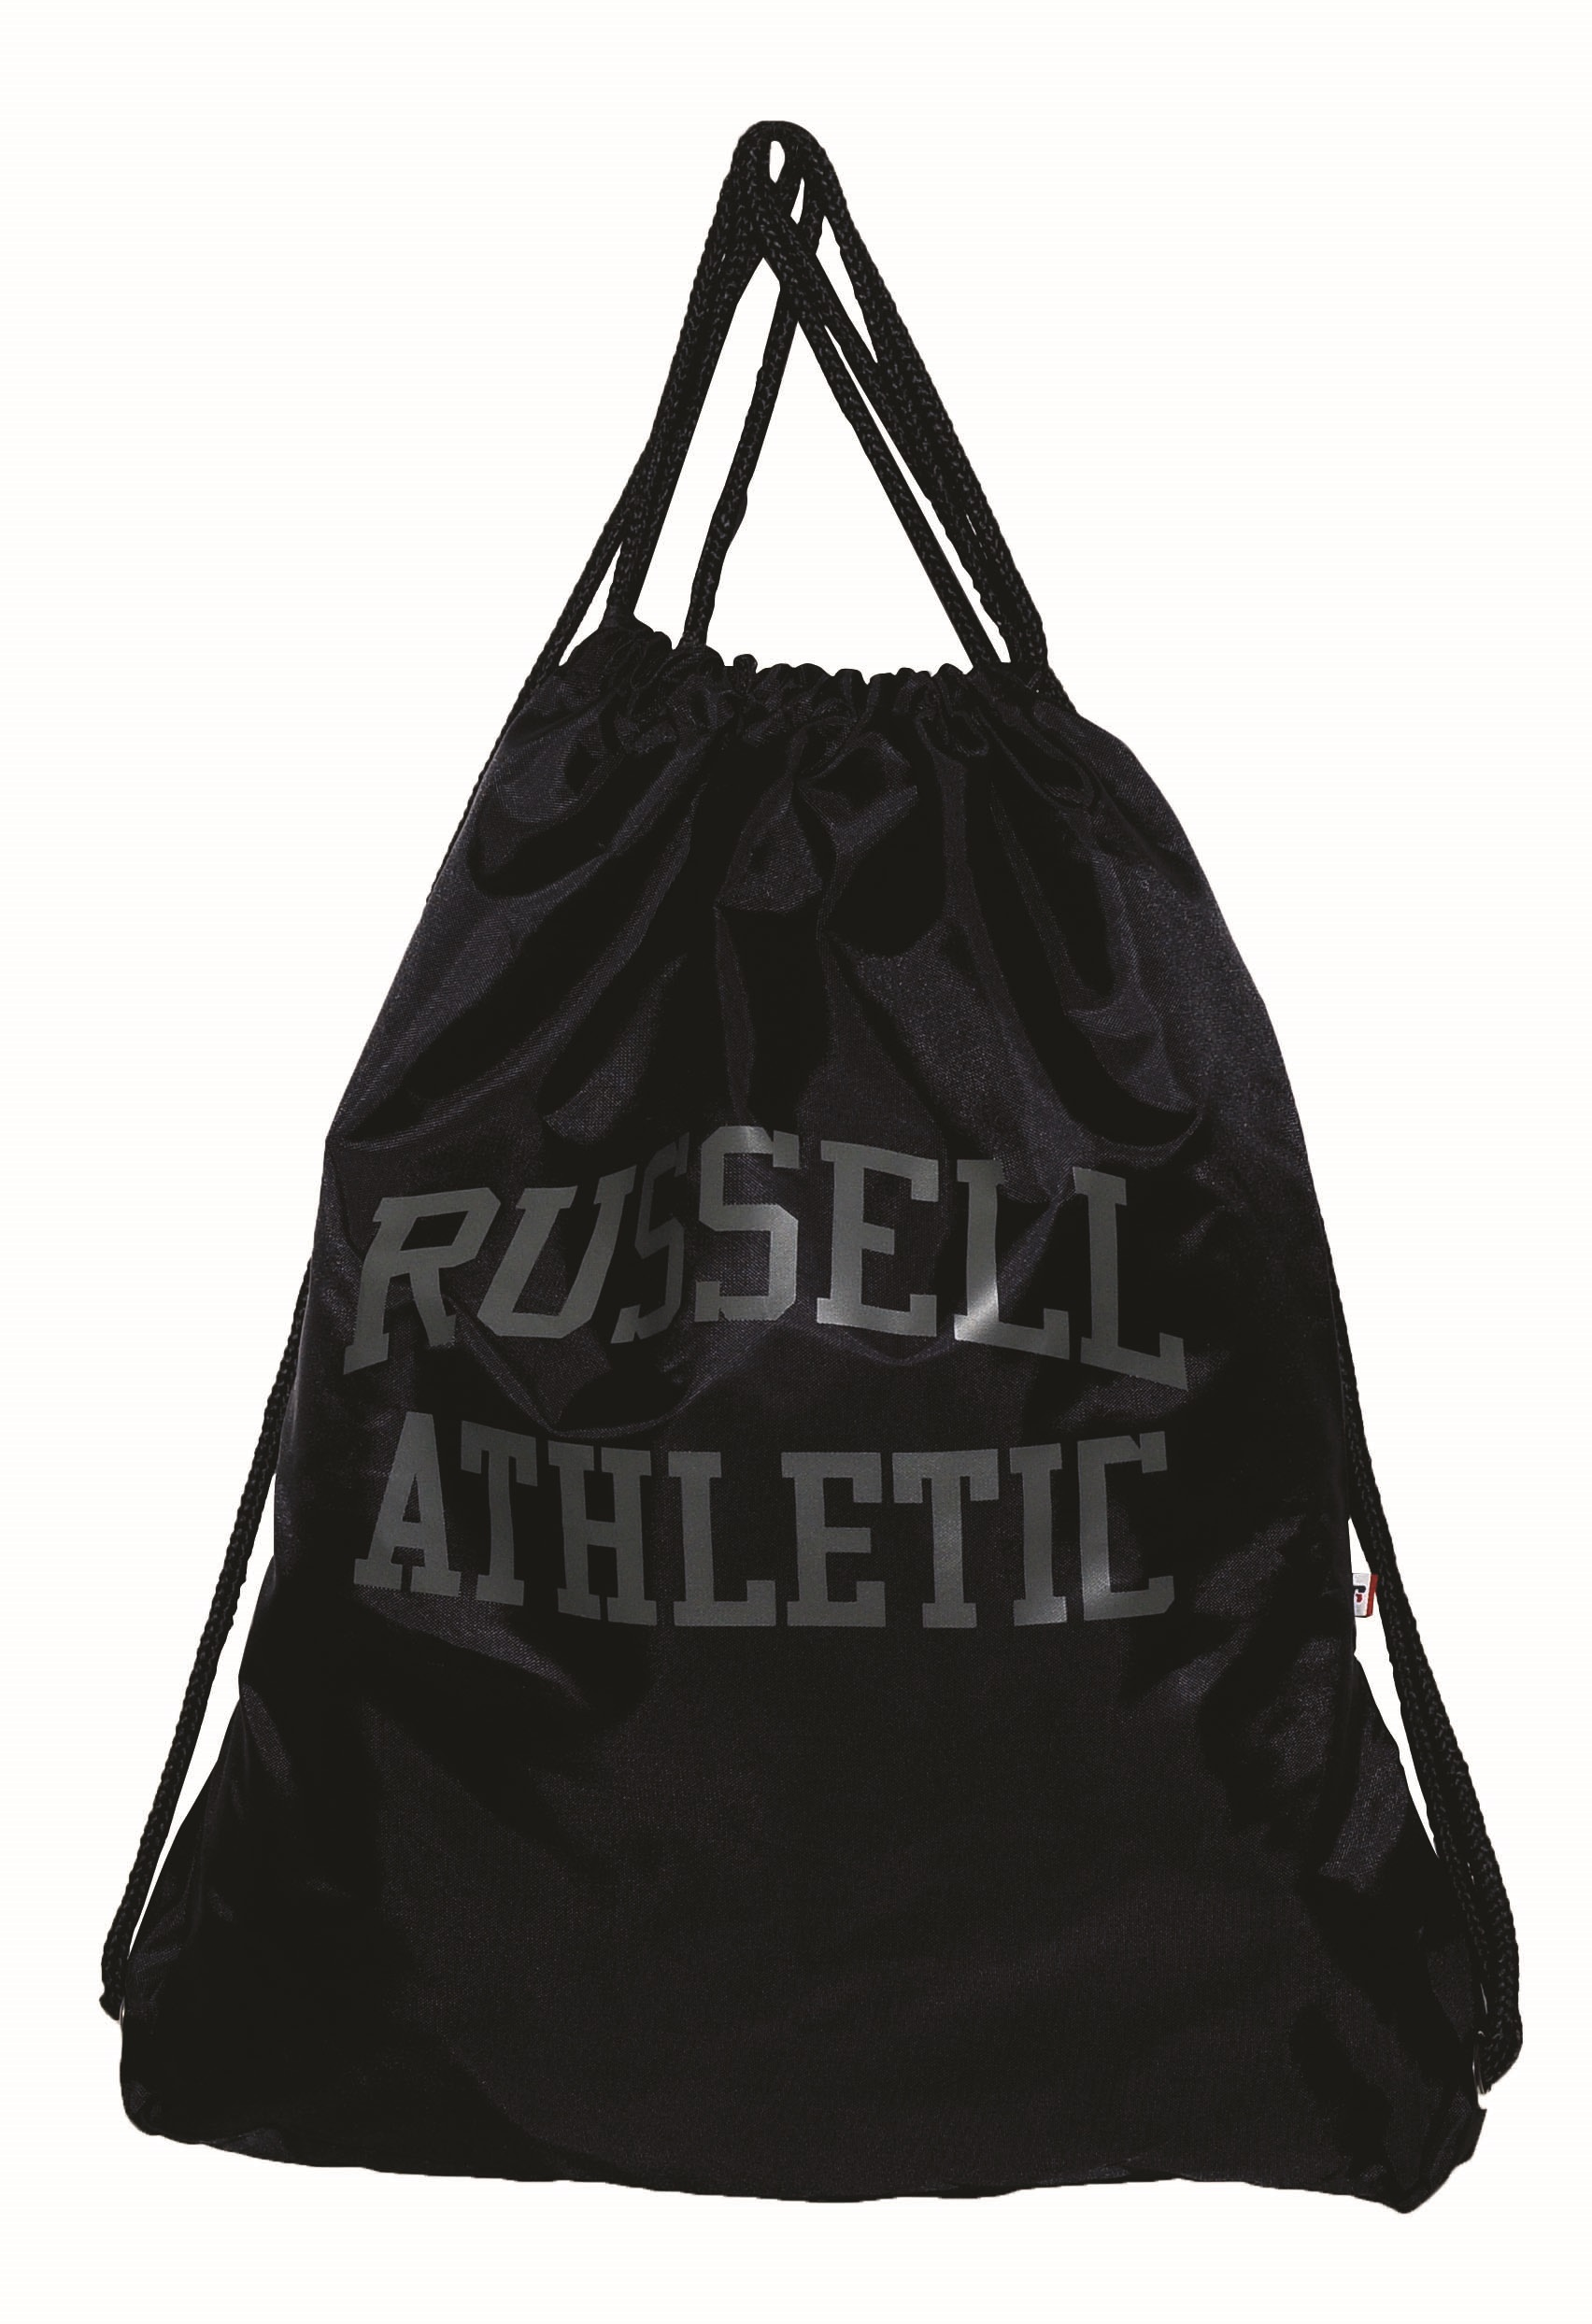 4b3ac7f60c5 Τσαντα Πλατης με Κορδόνι Poly Russell Athletic 391-53782-52 Μαύρο